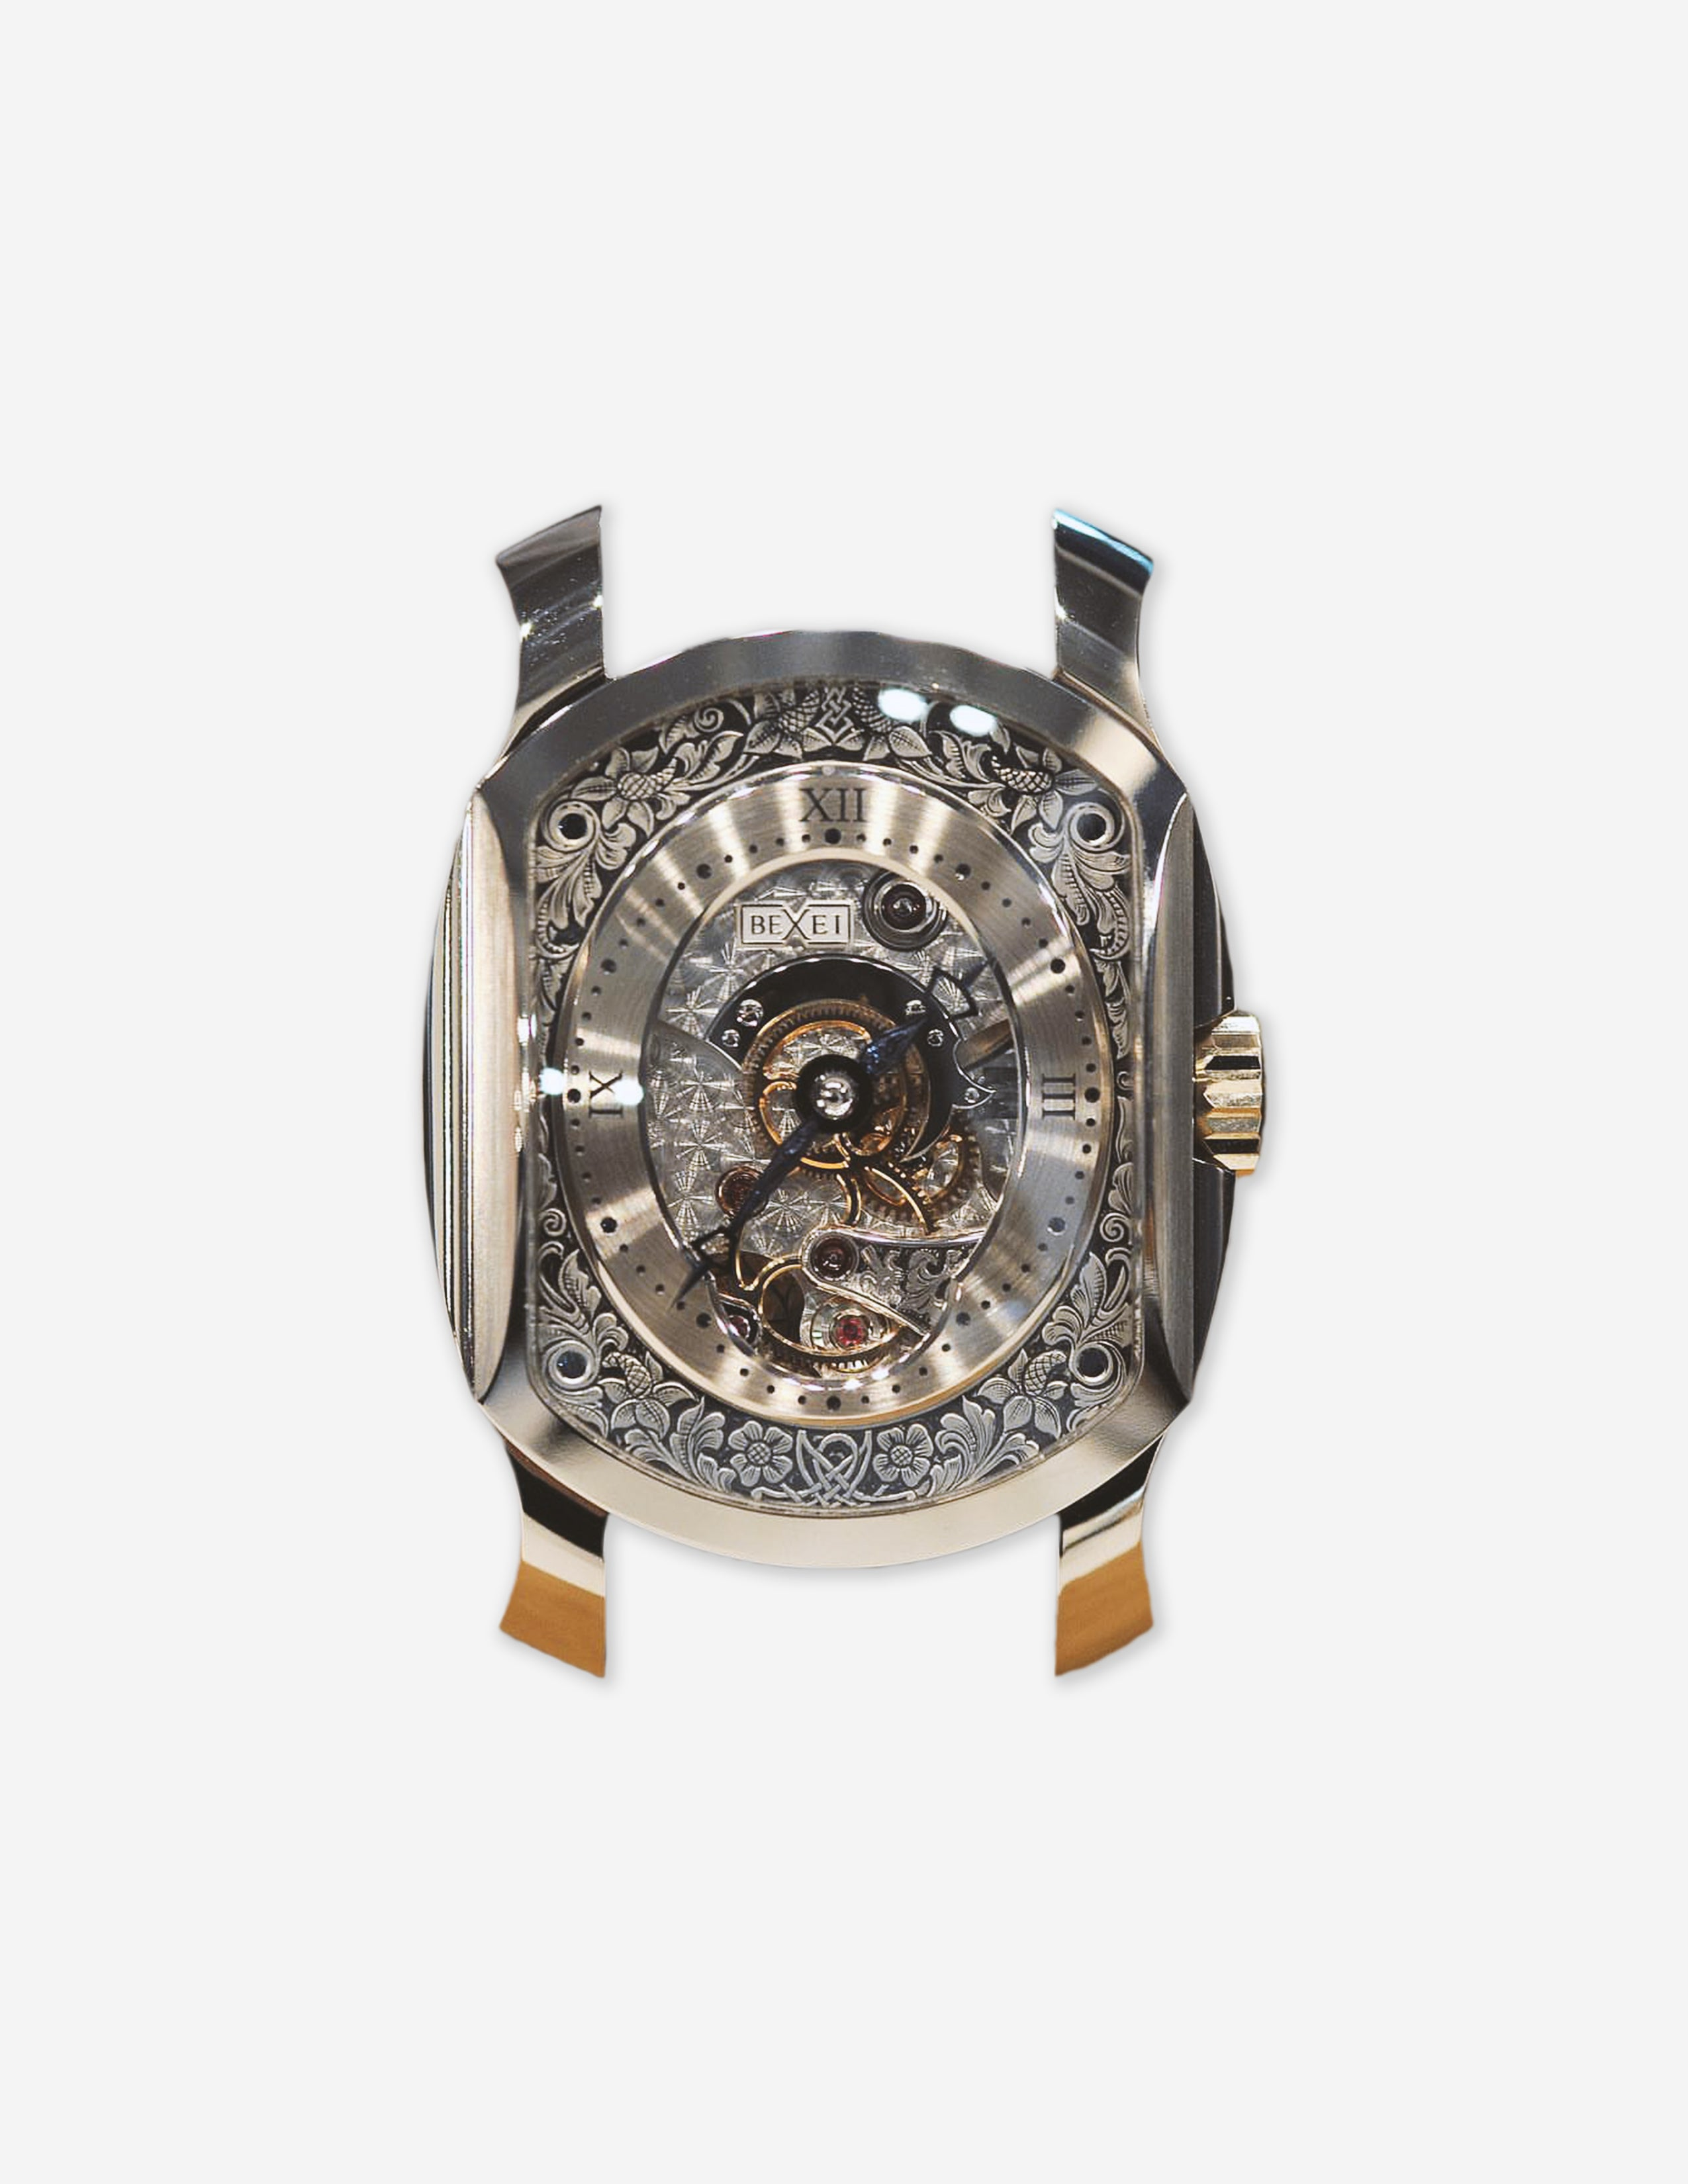 A Bexei Dignitas wristwatch with an engraved dial for A Collected Man London